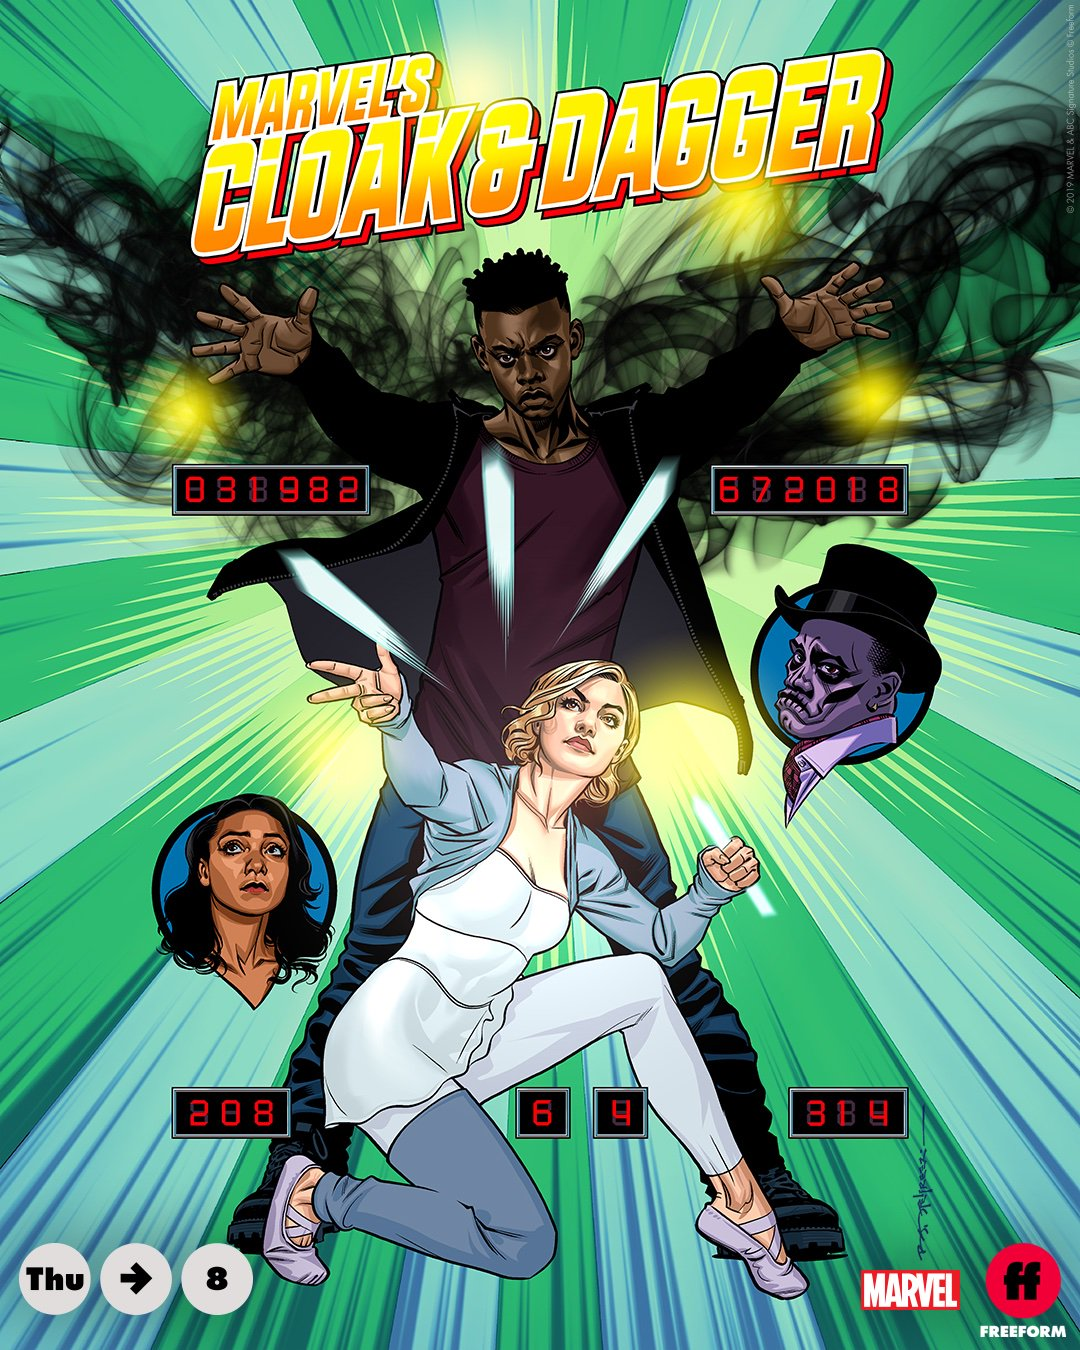 Cloak and Dagger Season 2 Episode 8 Poster